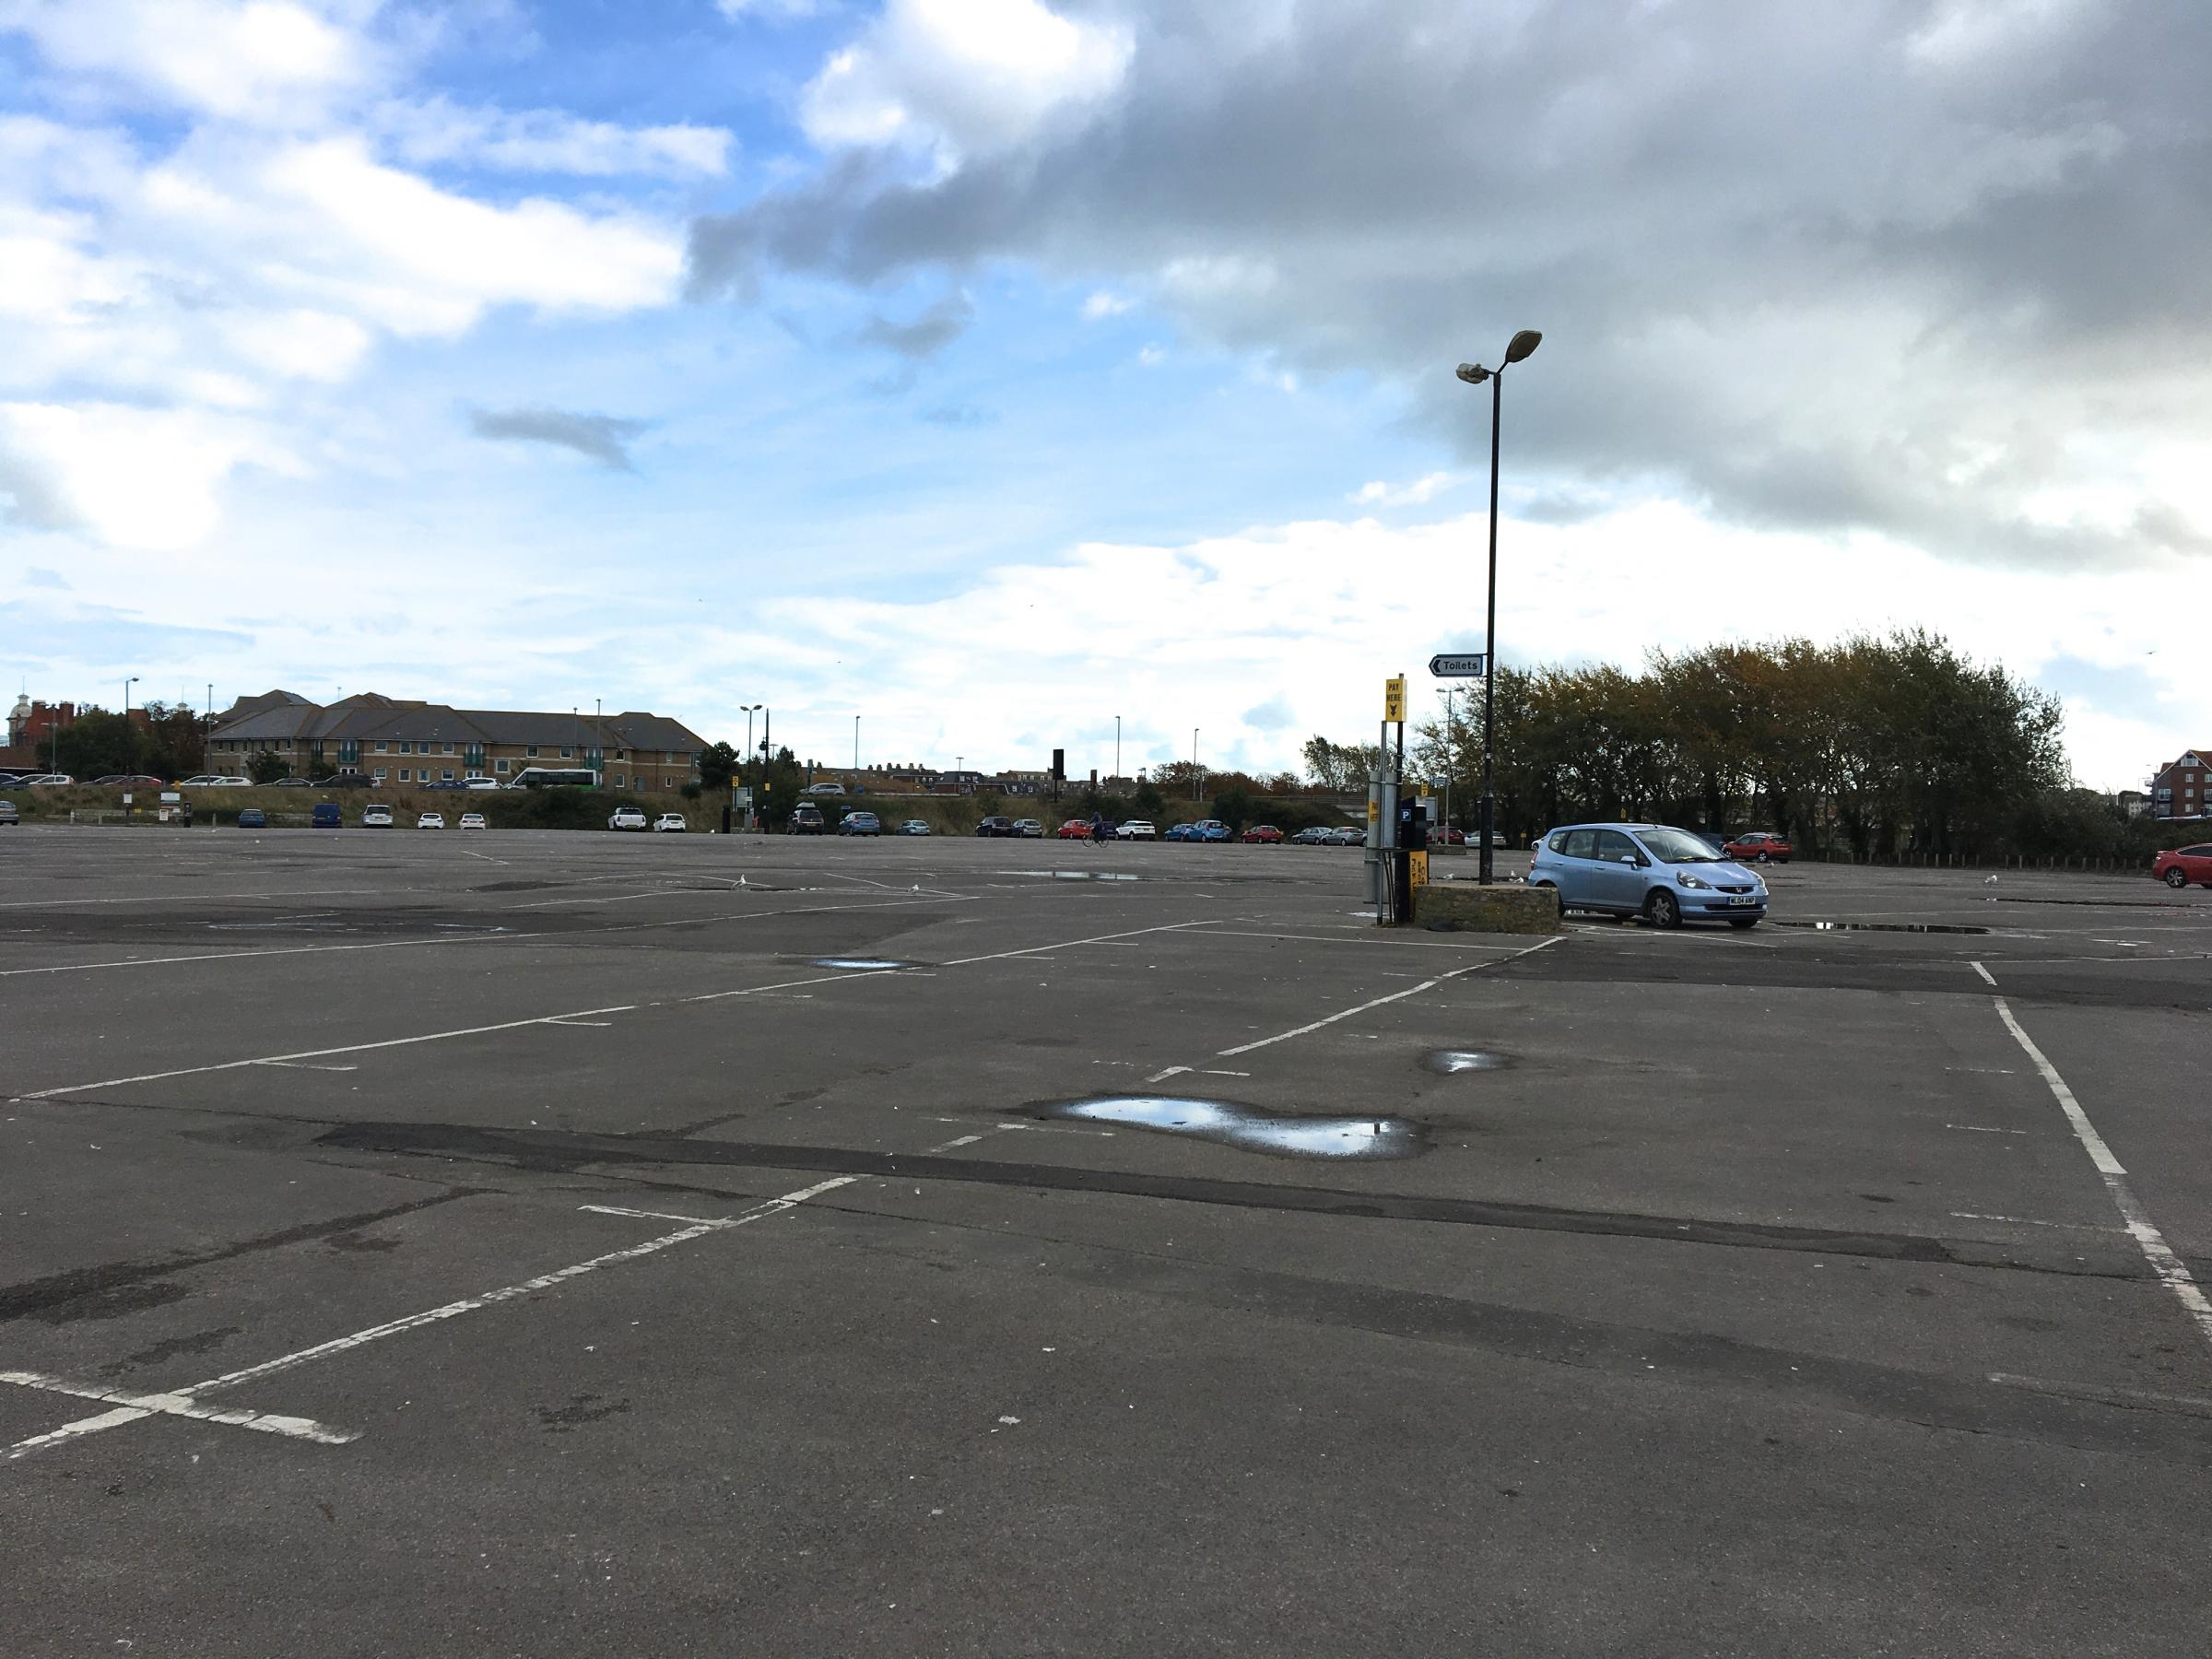 The Swannery car park